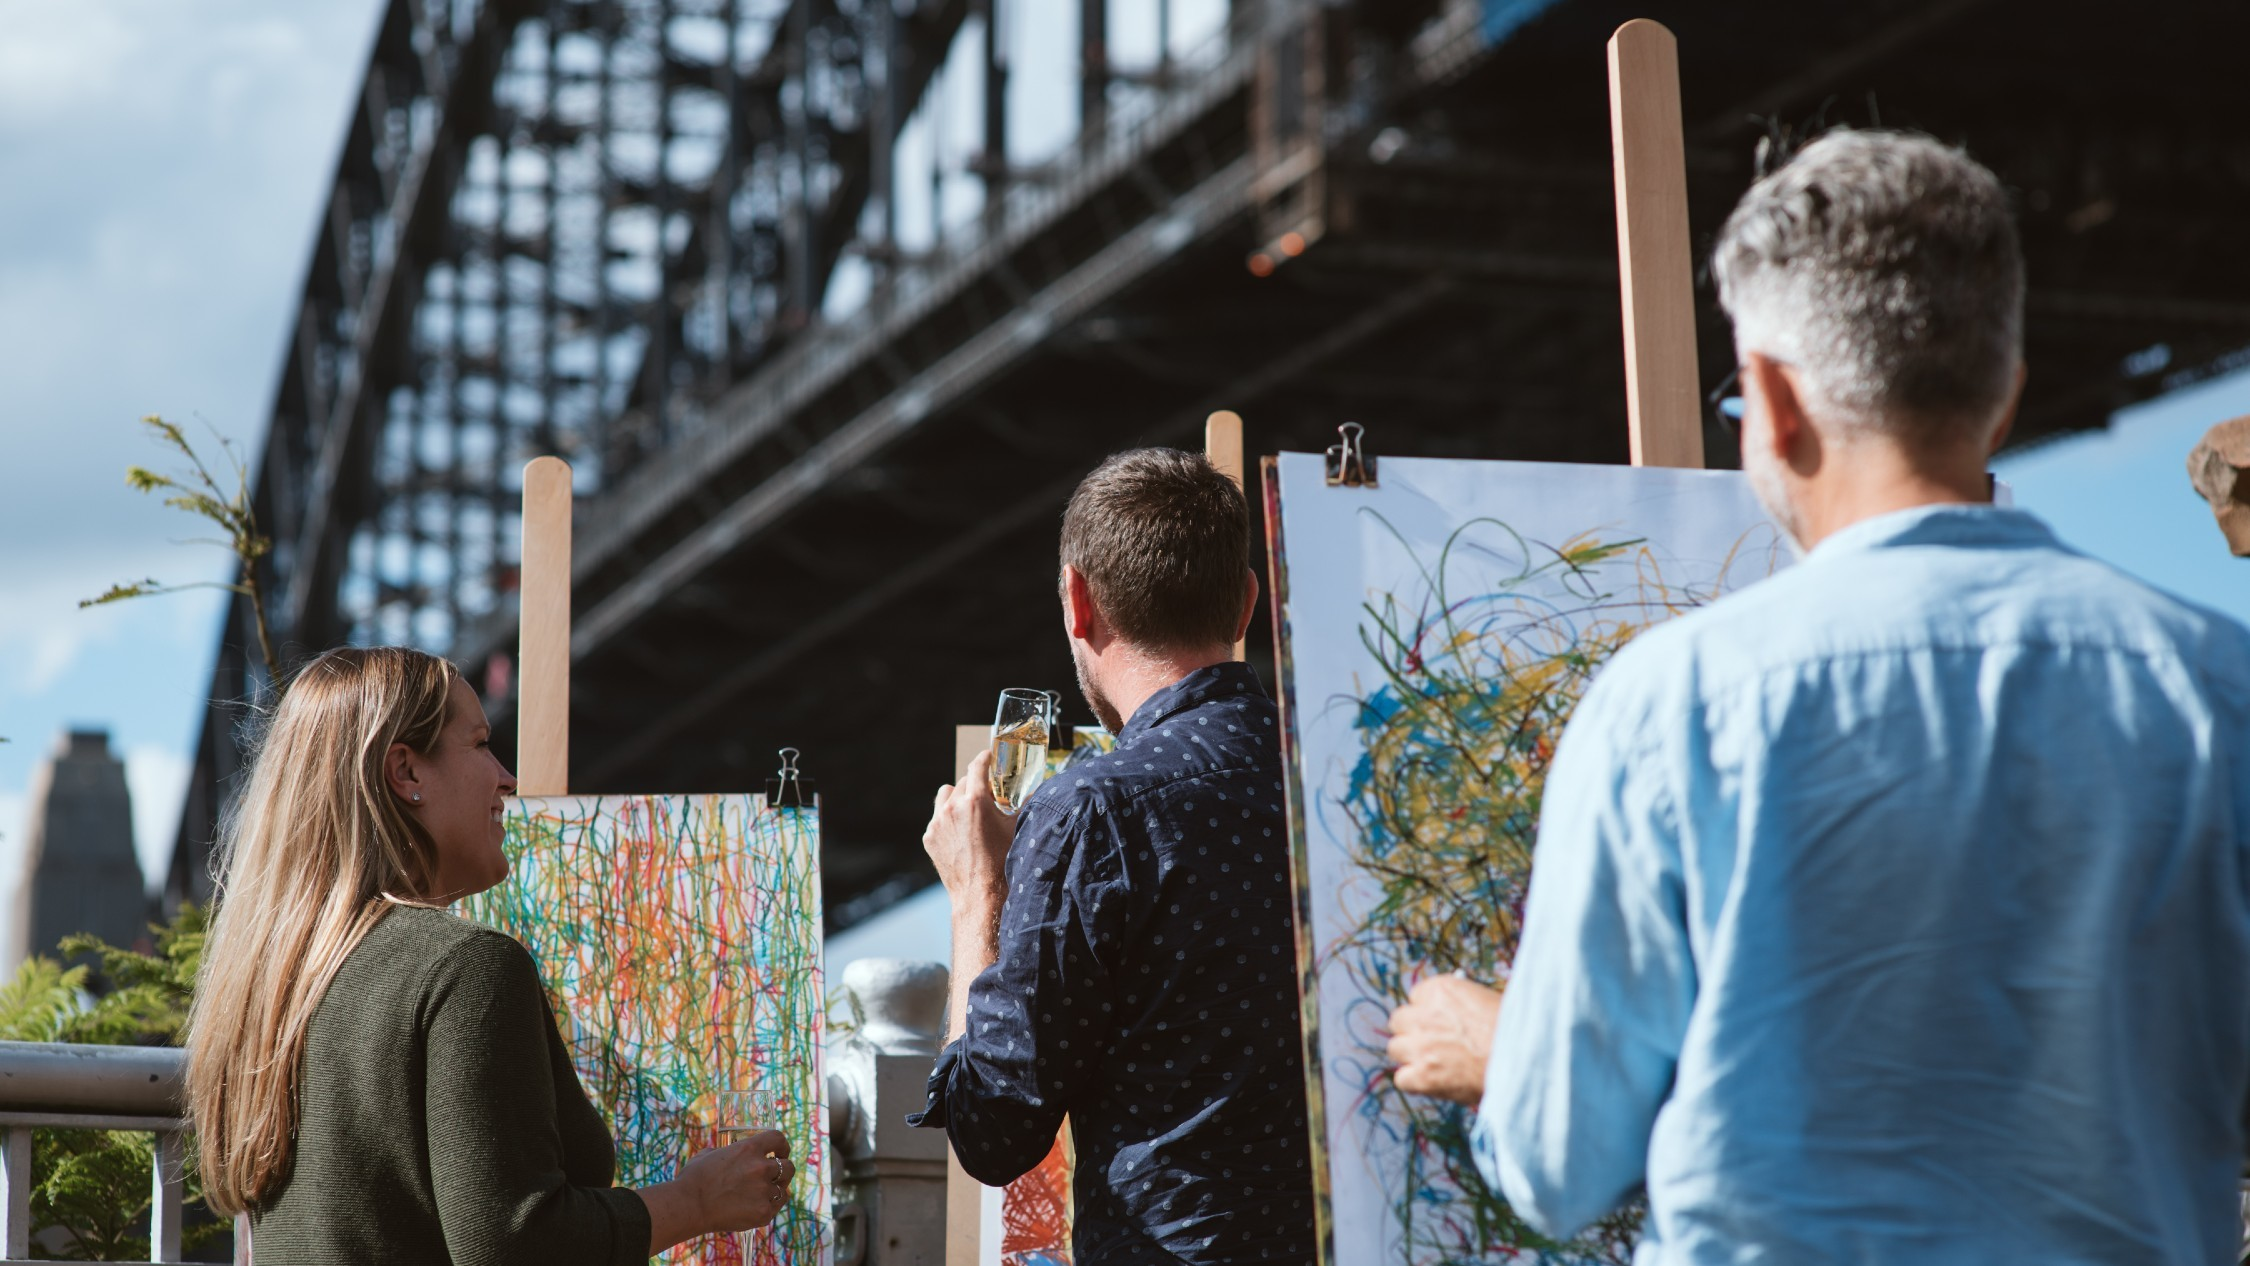 People with easels create scribbly drawings, they hold wine glasses, the Sydney Harbour Bridge is in the background.